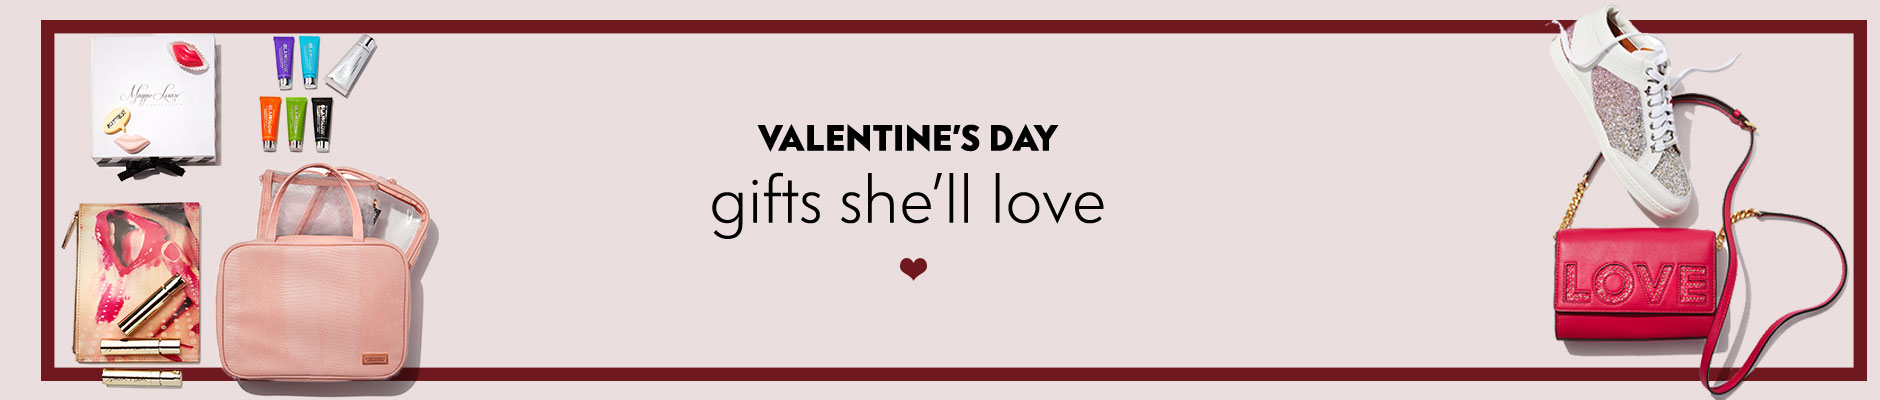 Valentine's Day - Gifts she'll love